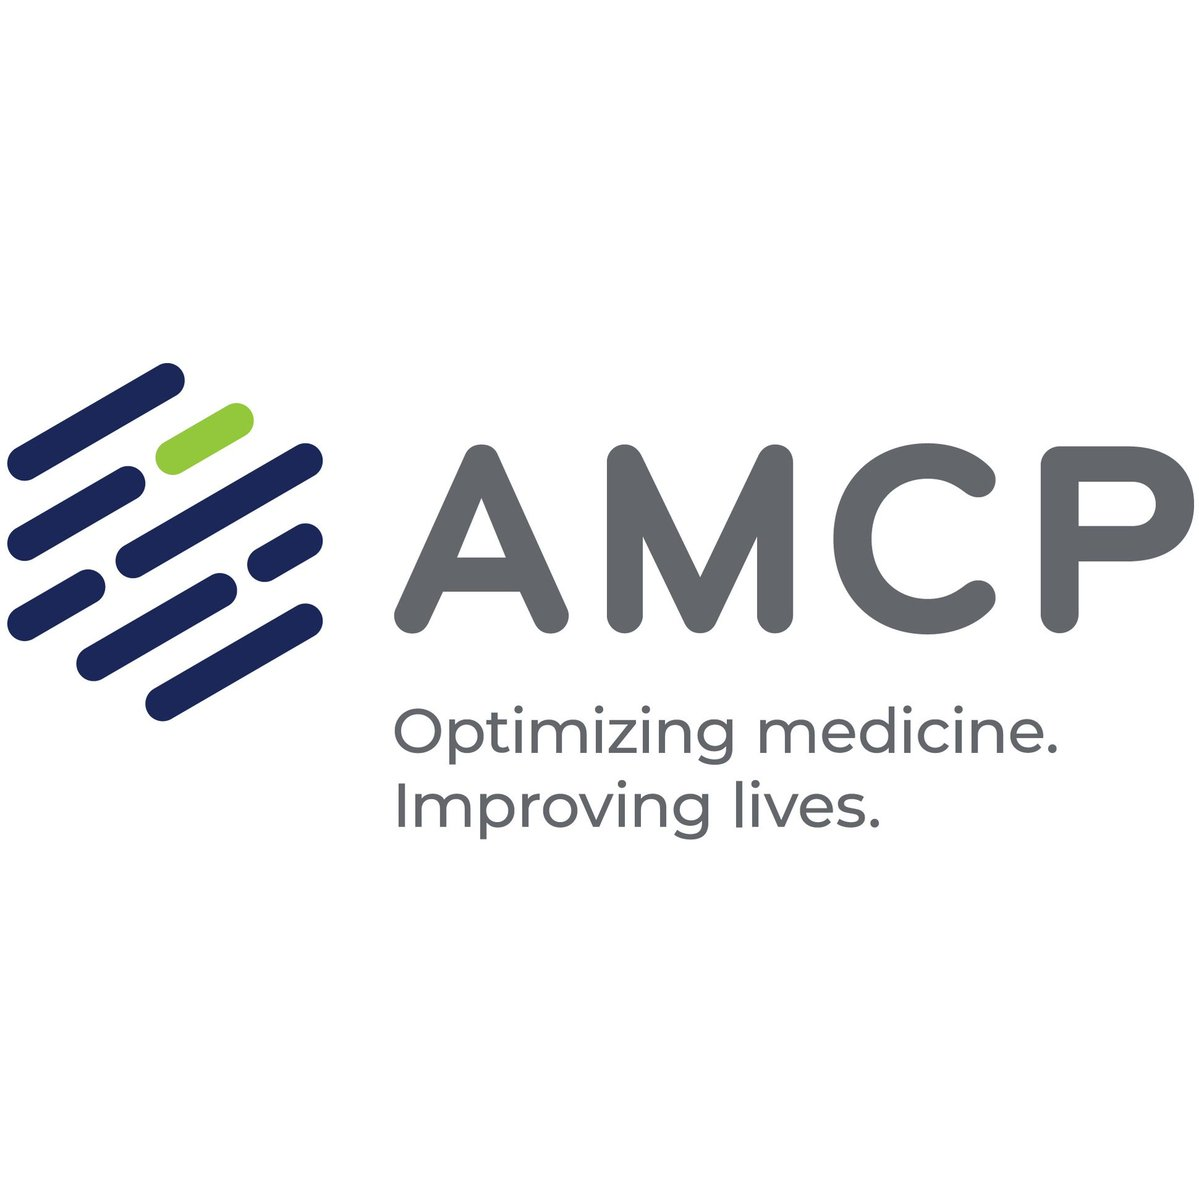 Latest news from AMCP. prn.to/2m5pGAh